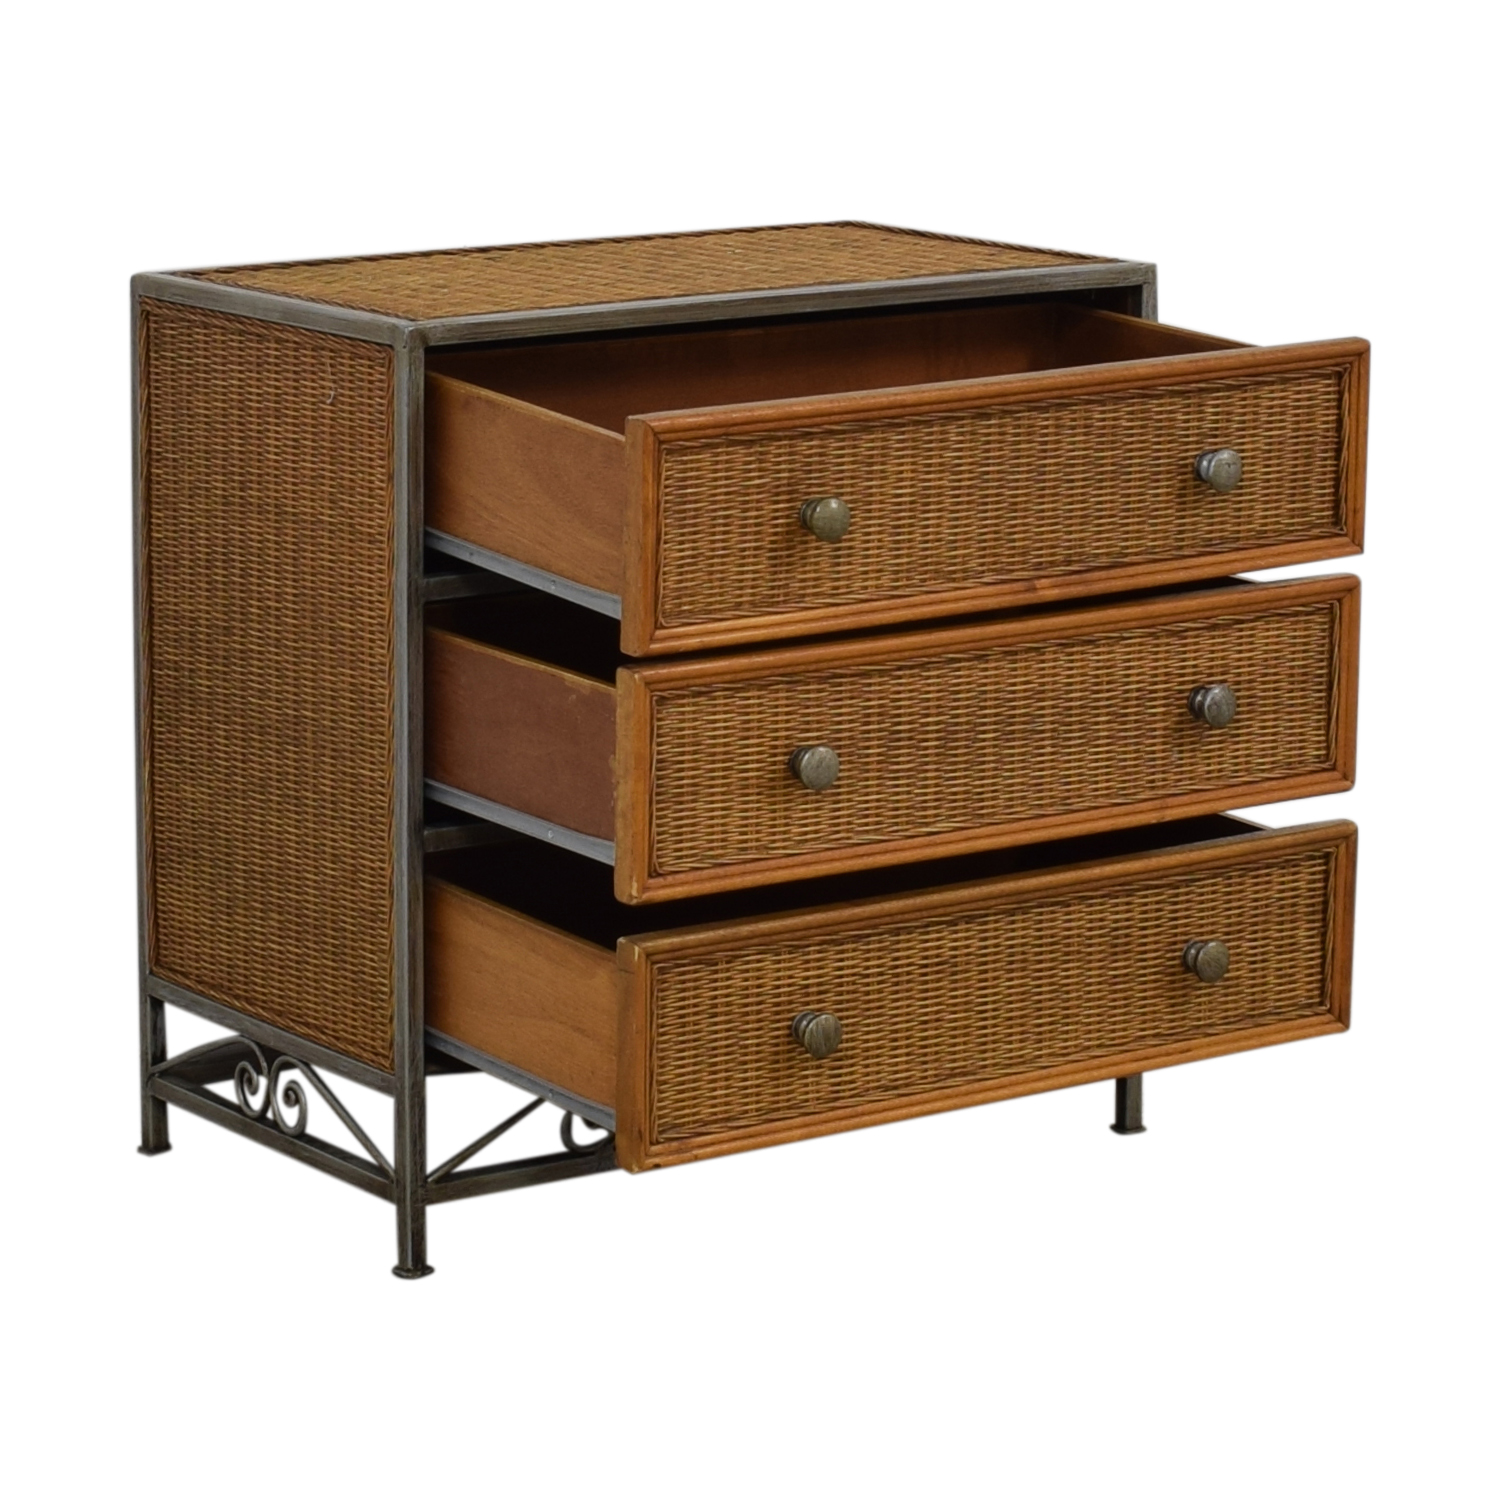 Pier 1 Imports Pier 1 Imports Miranda Three-Drawer Wicker Dresser